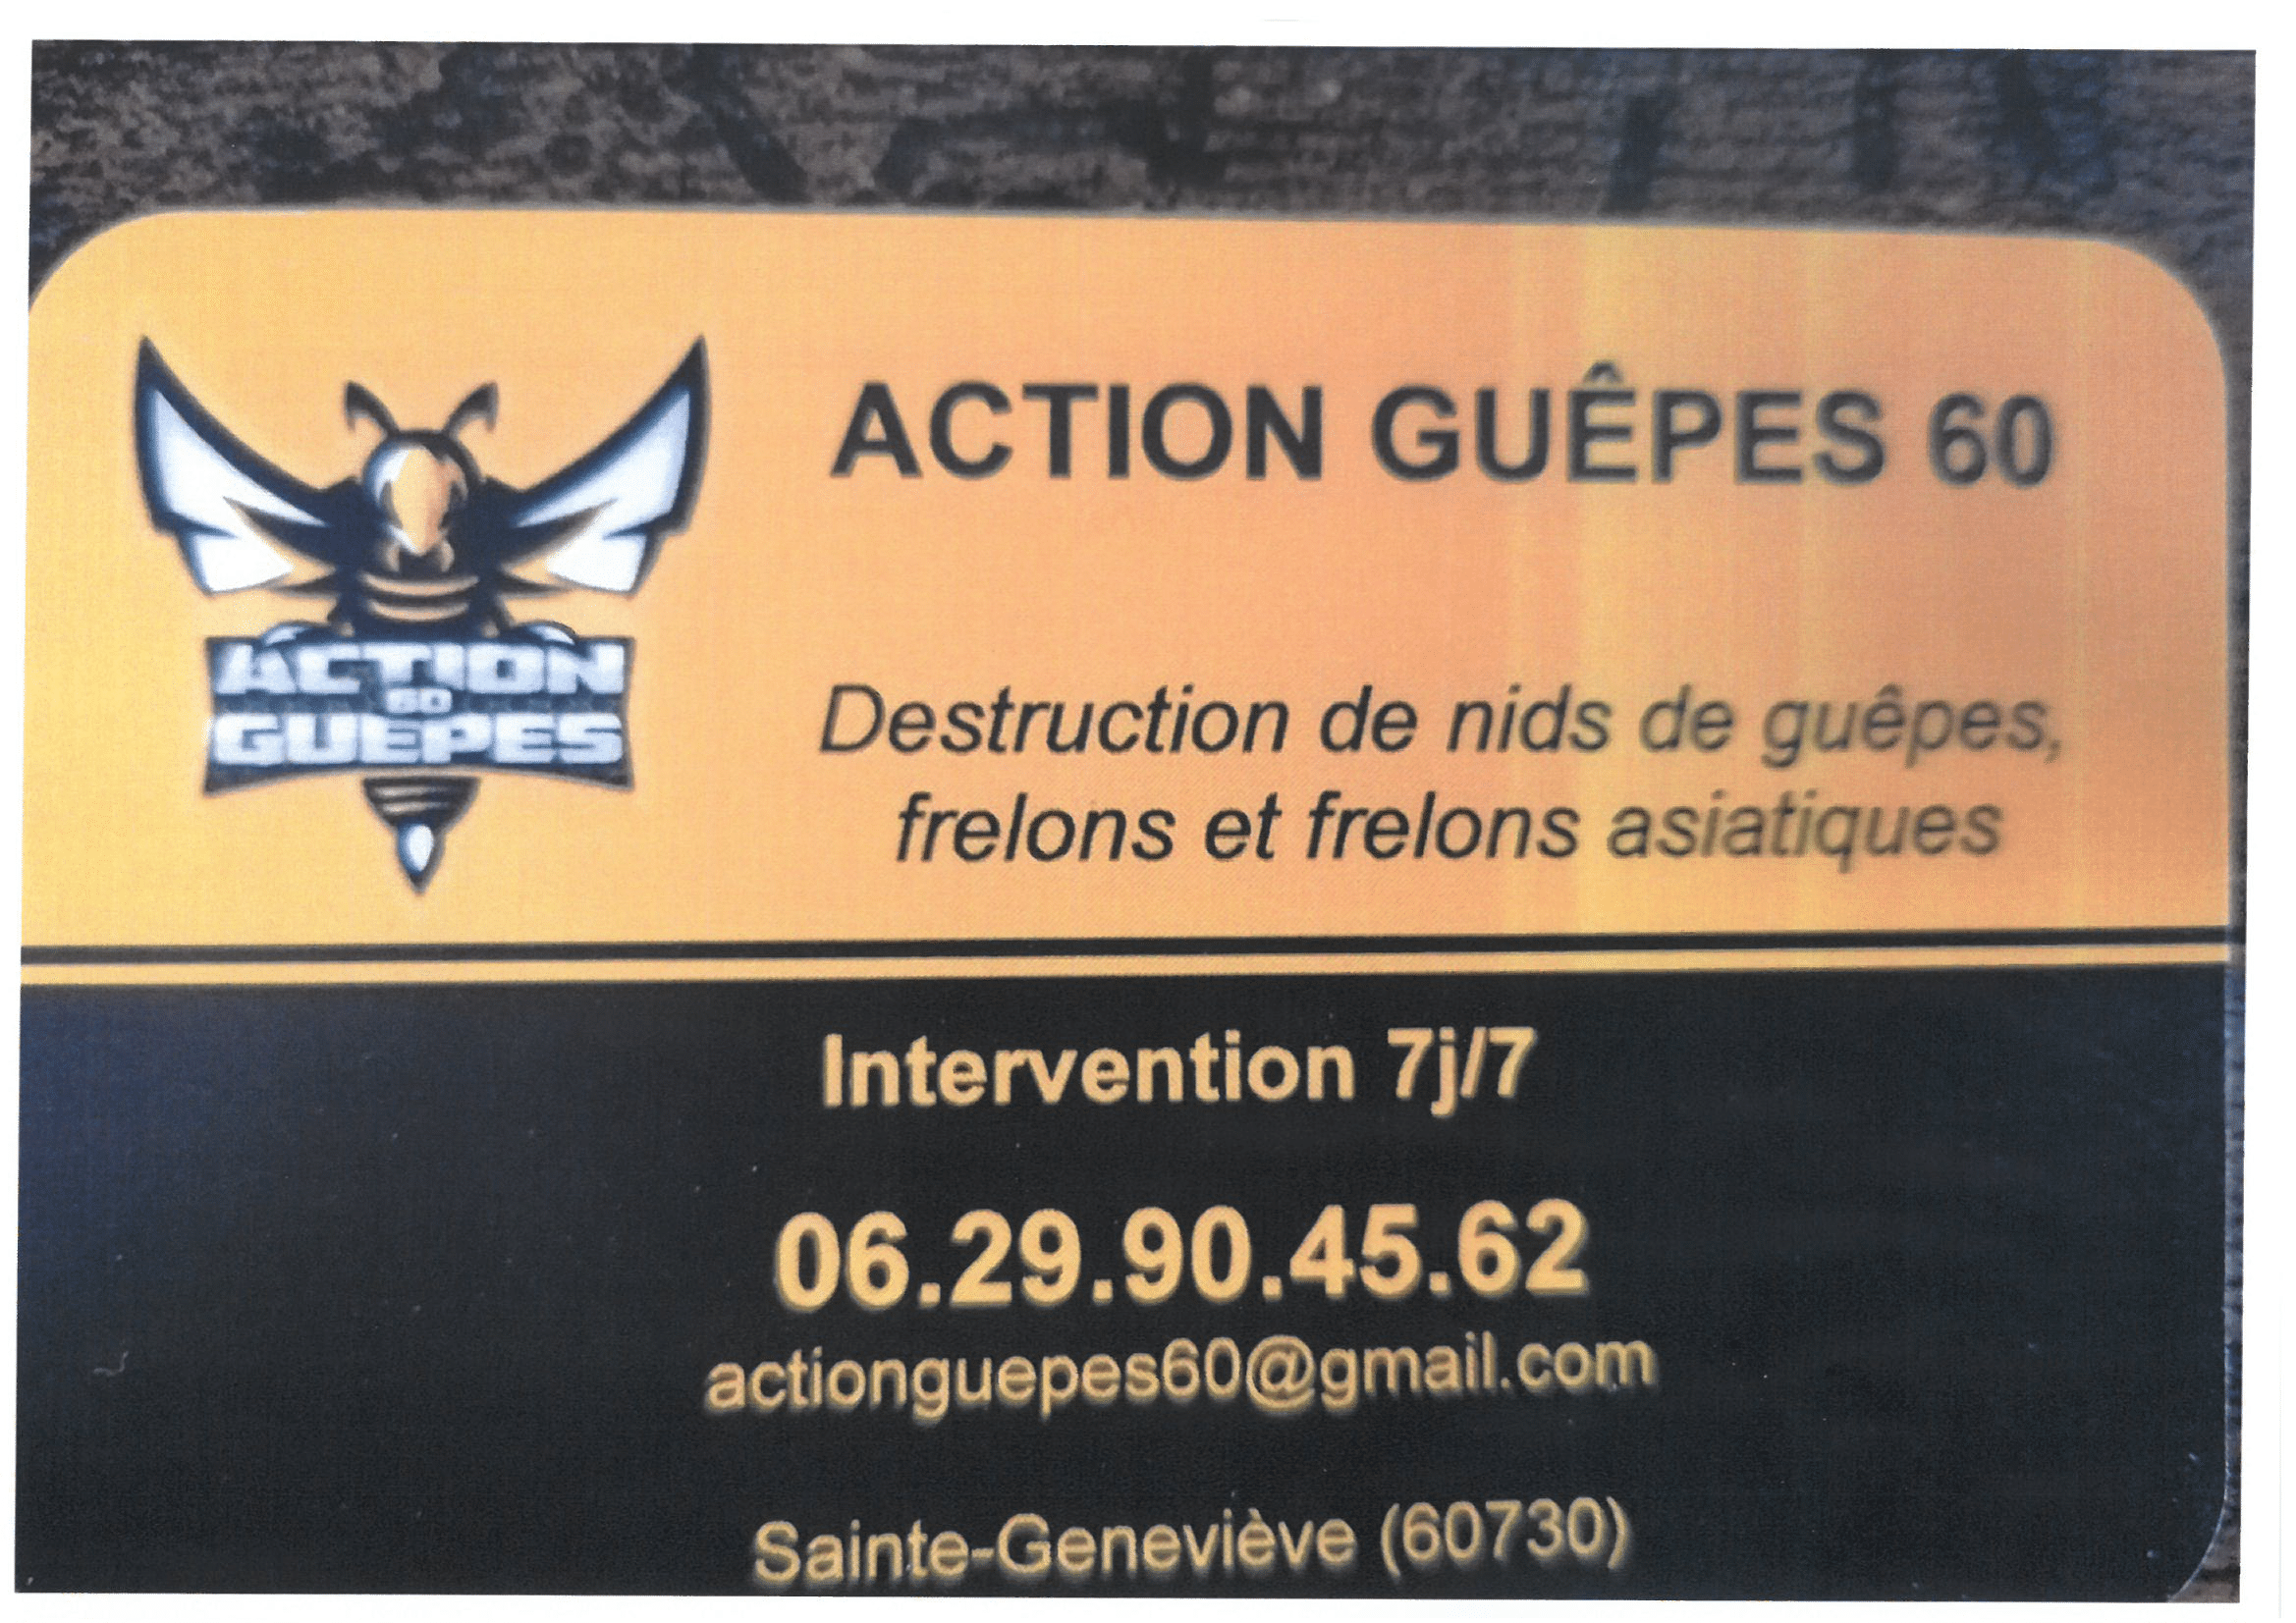 ACTION GUEPES 60-1.png